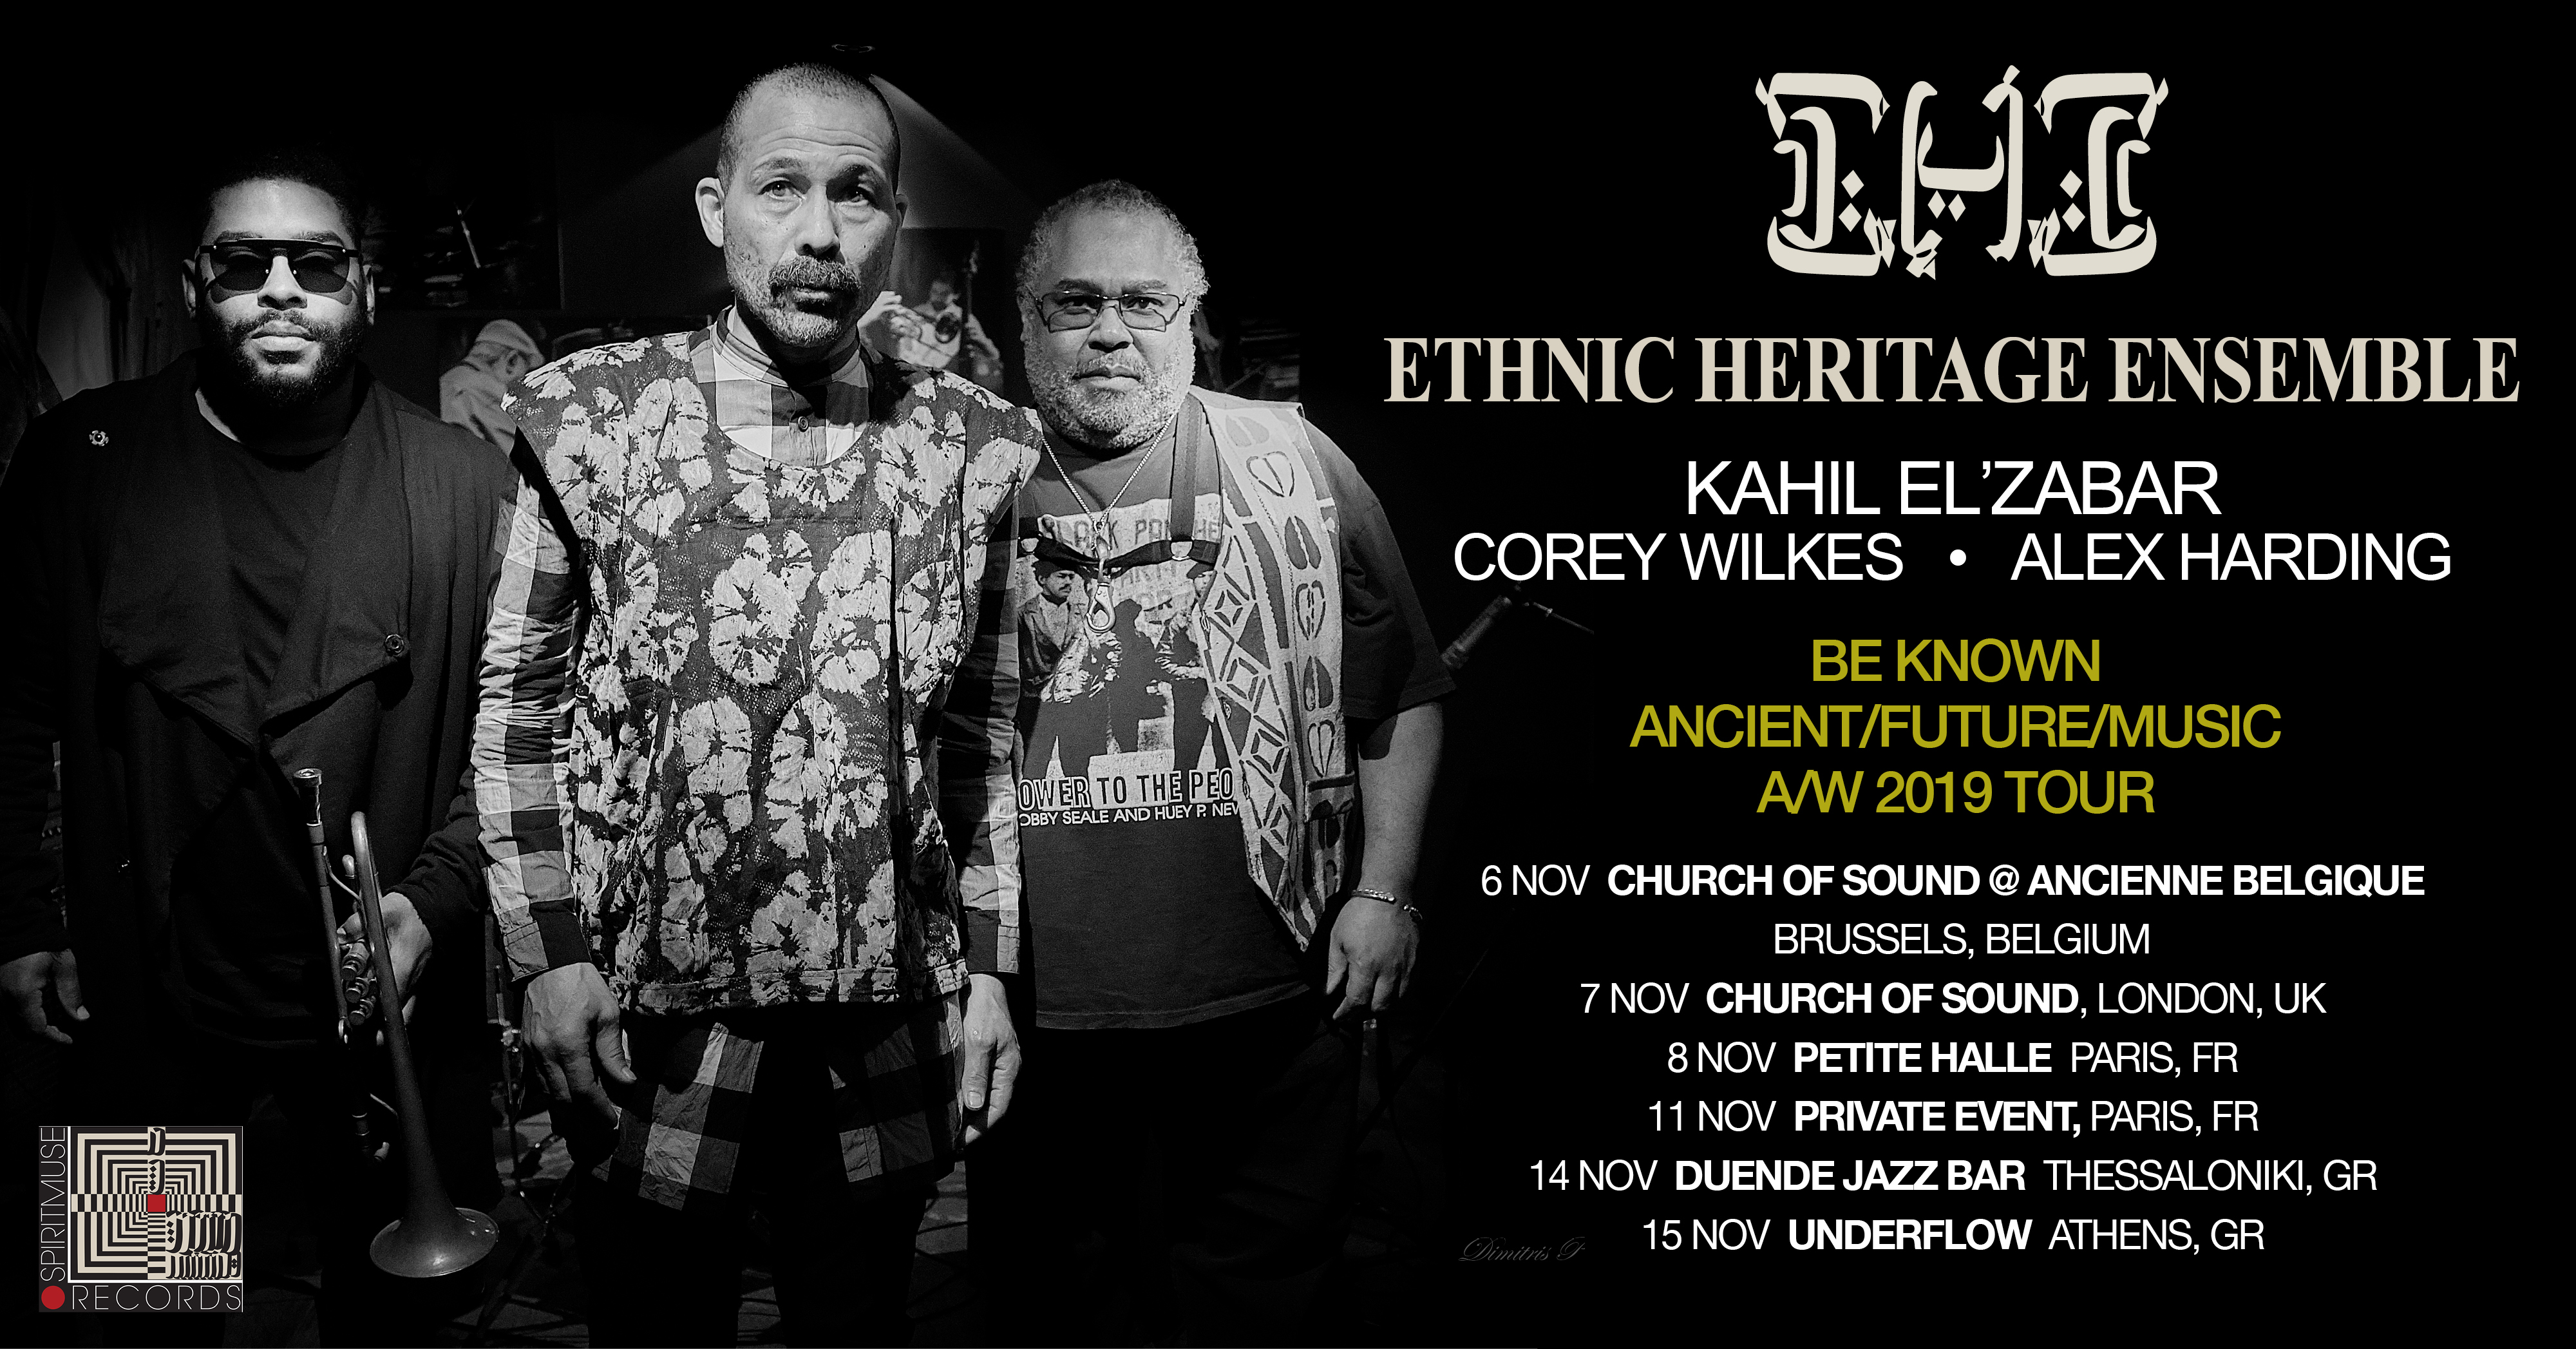 Ethnic Heritage Ensemble European Tour Autumn 2019